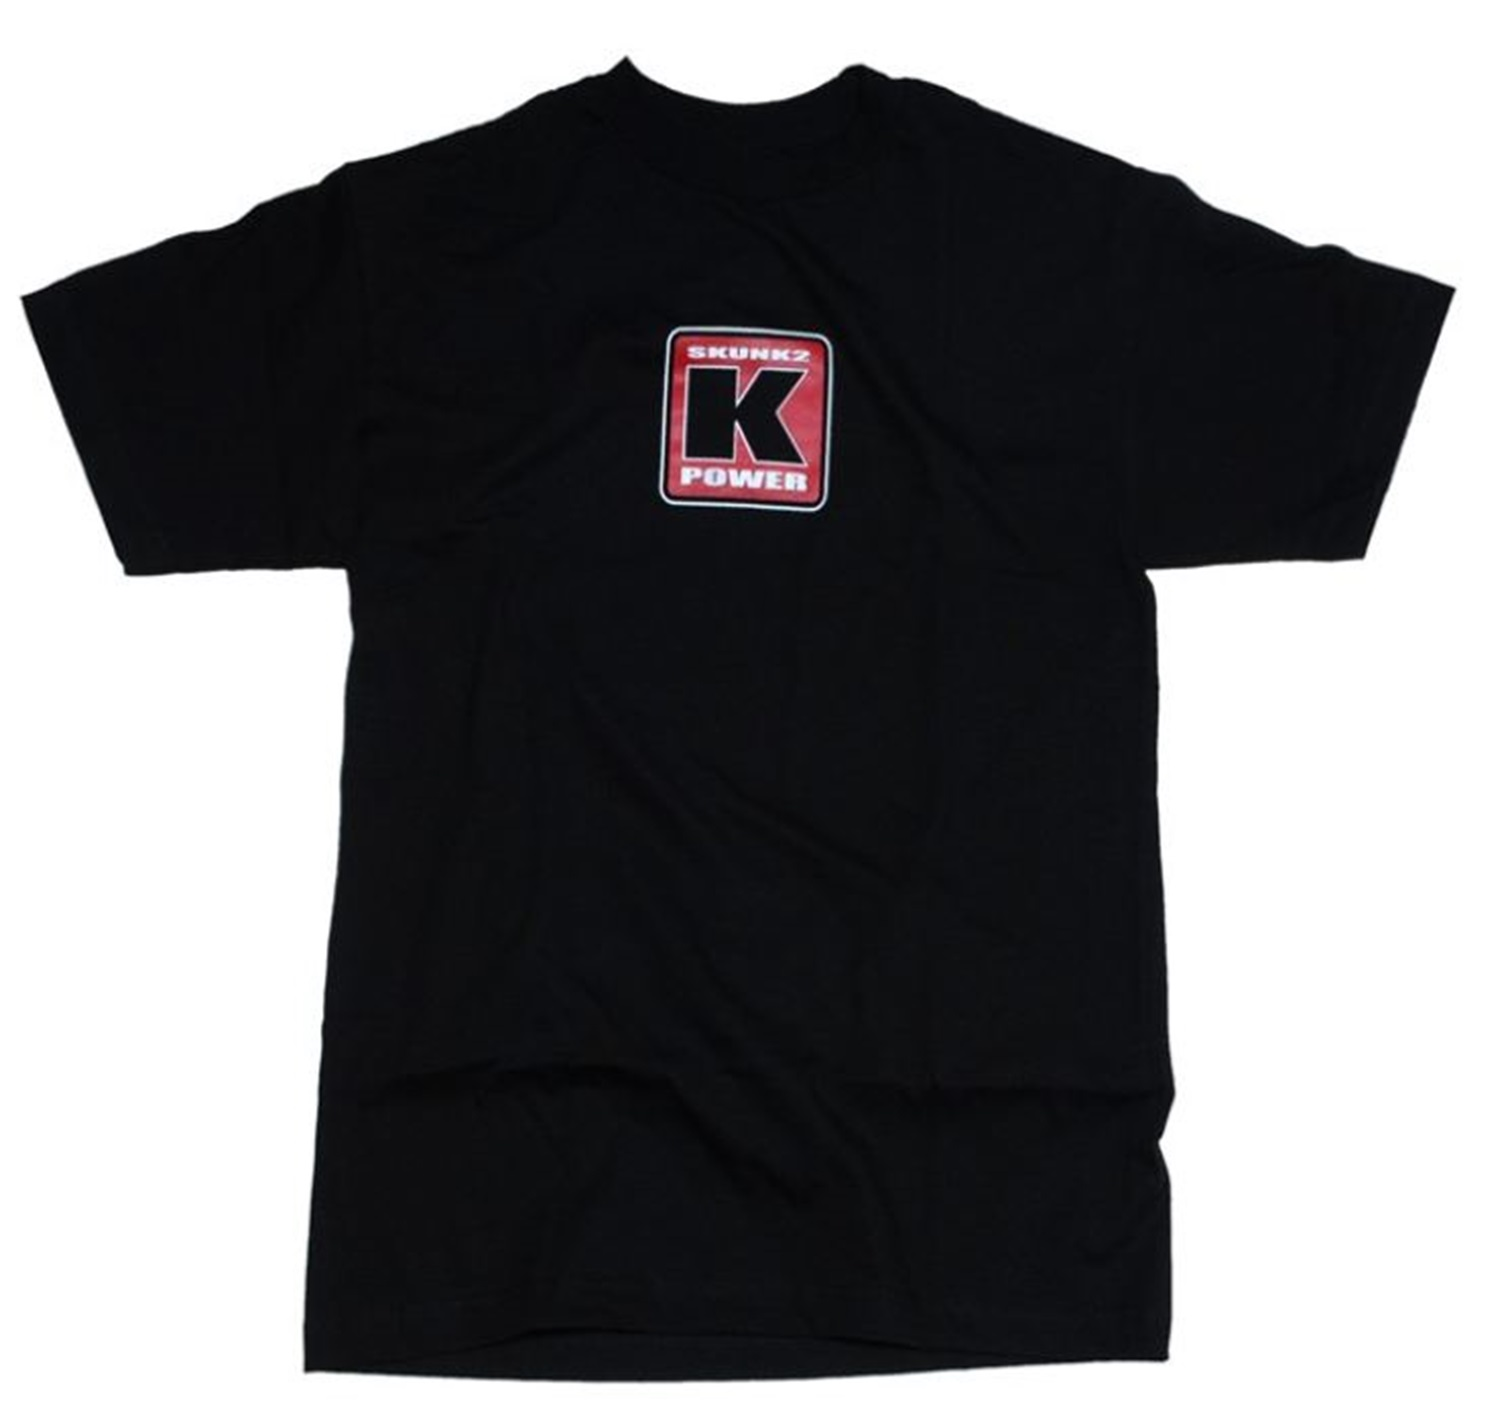 """K-Power"" Tee (Black) - S"